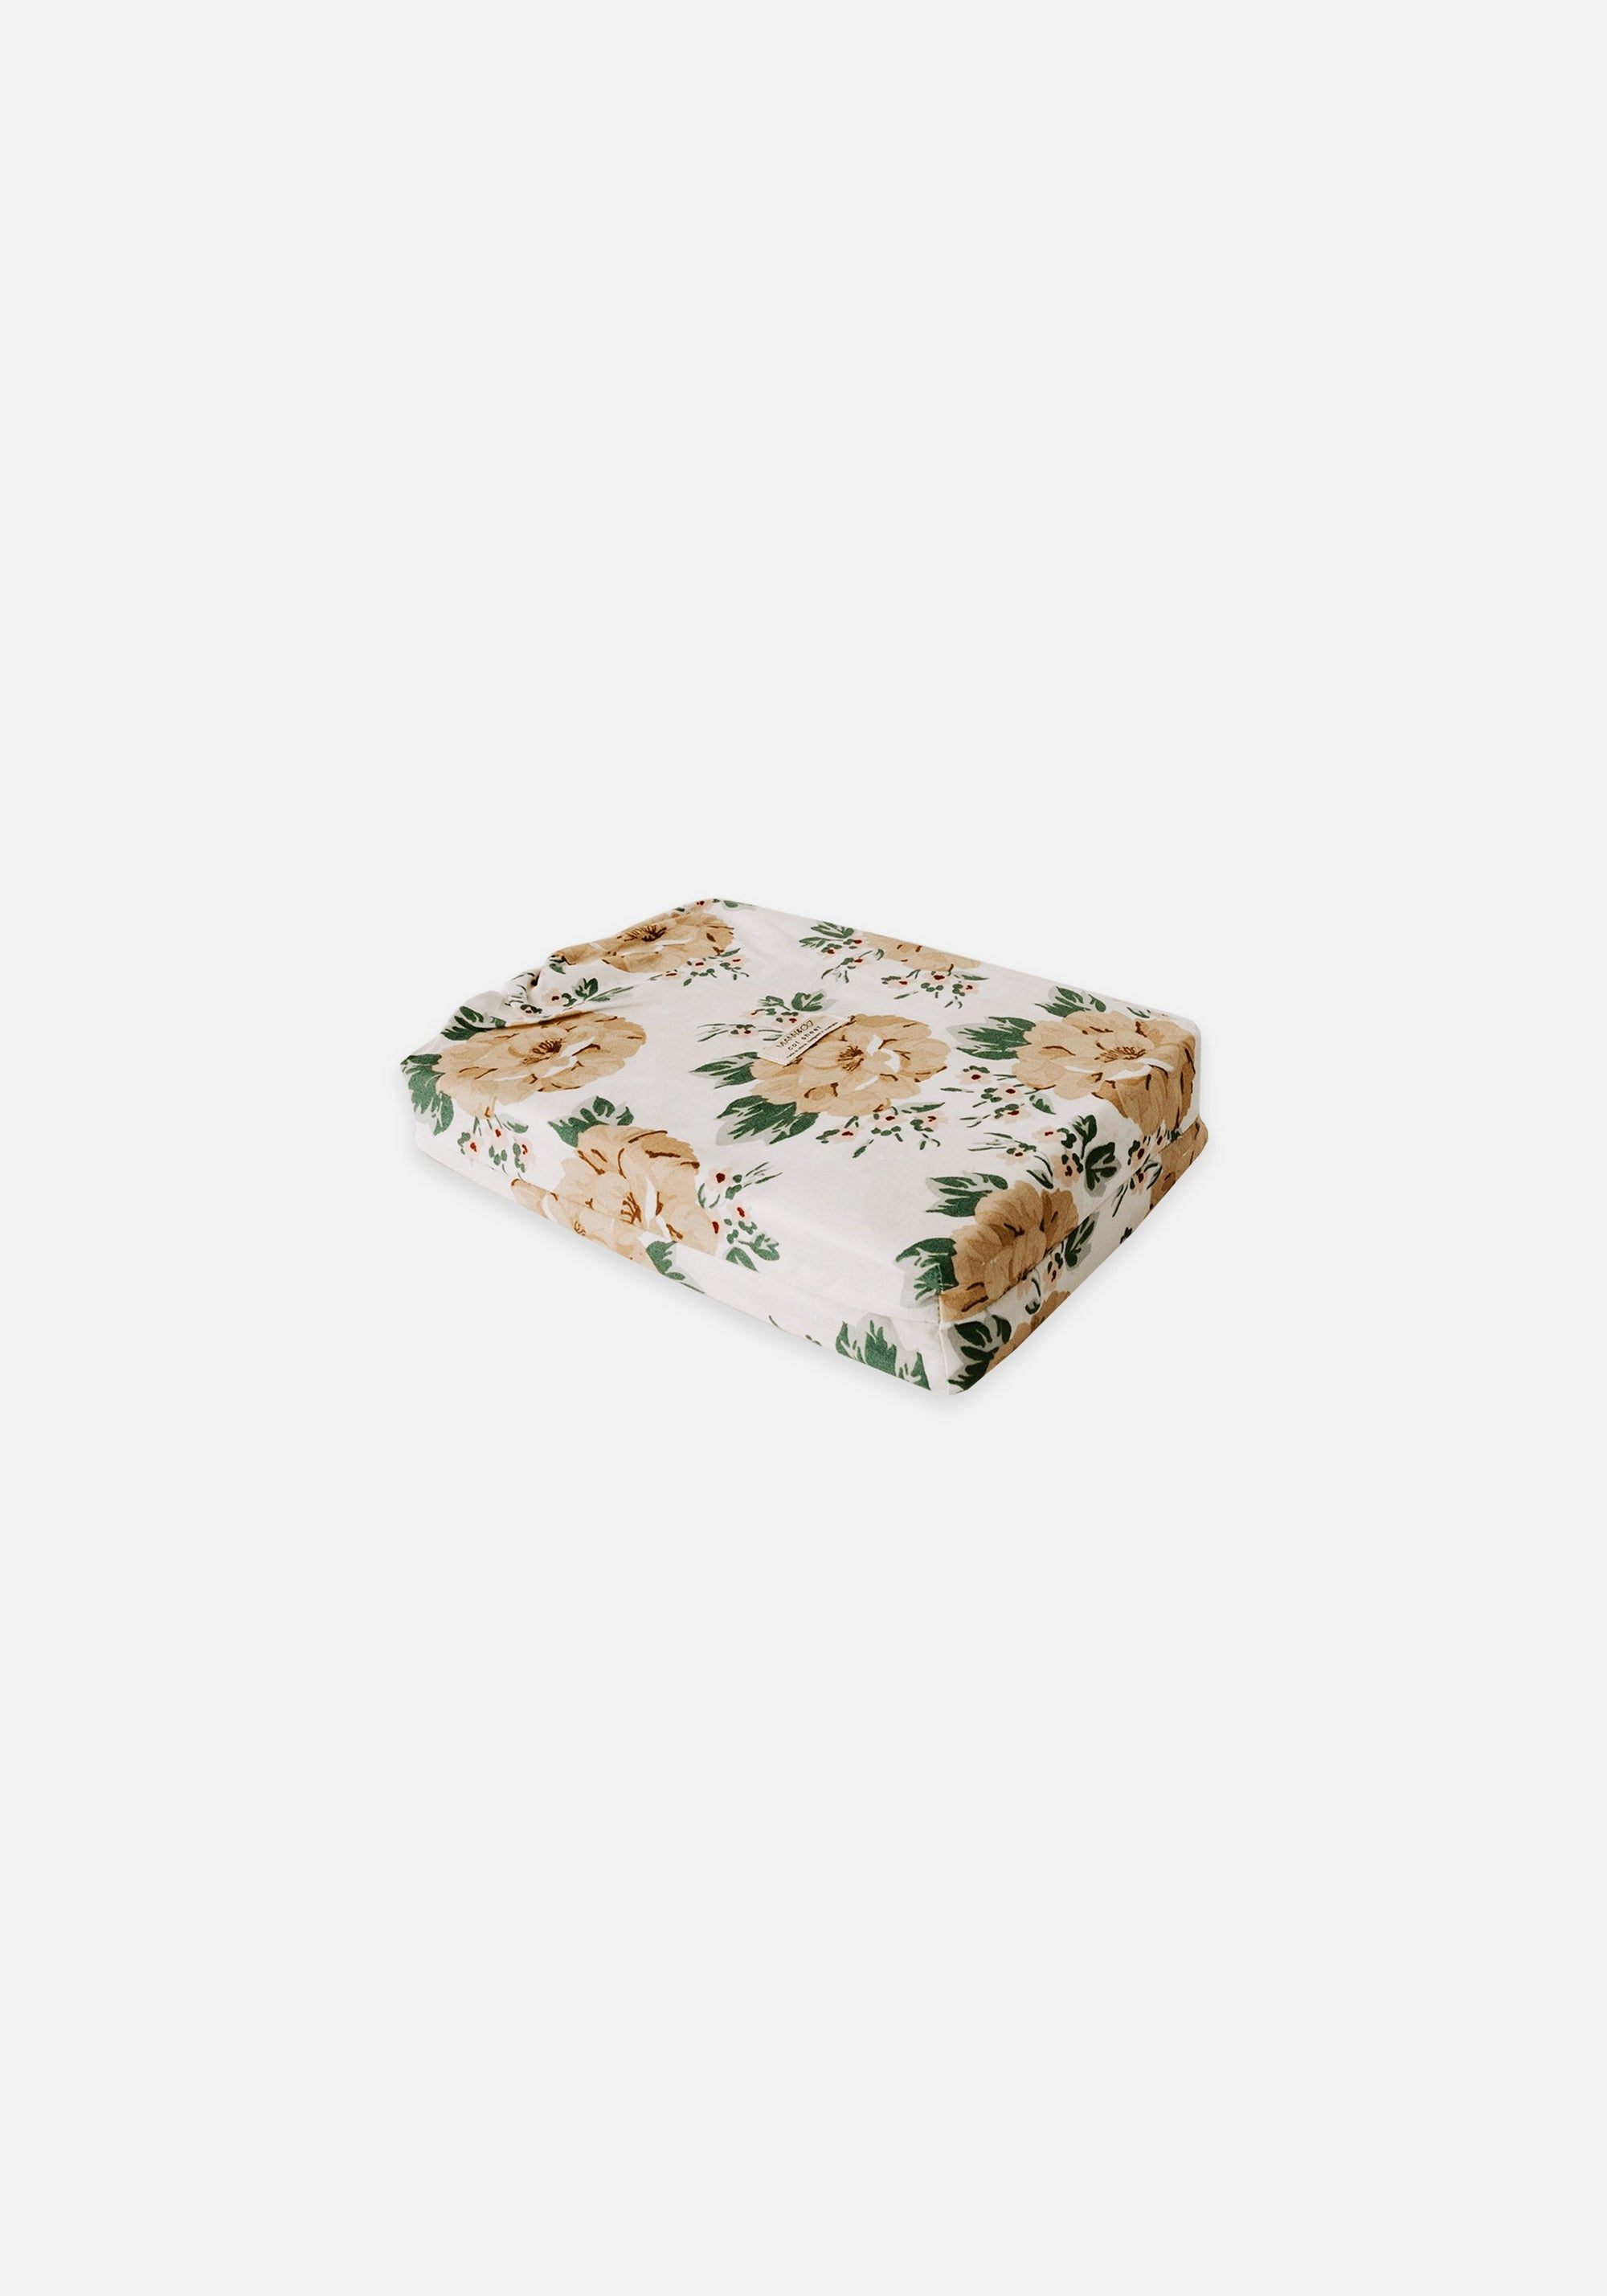 Miann & Co - Cot Fitted Sheet - Mustard Floral